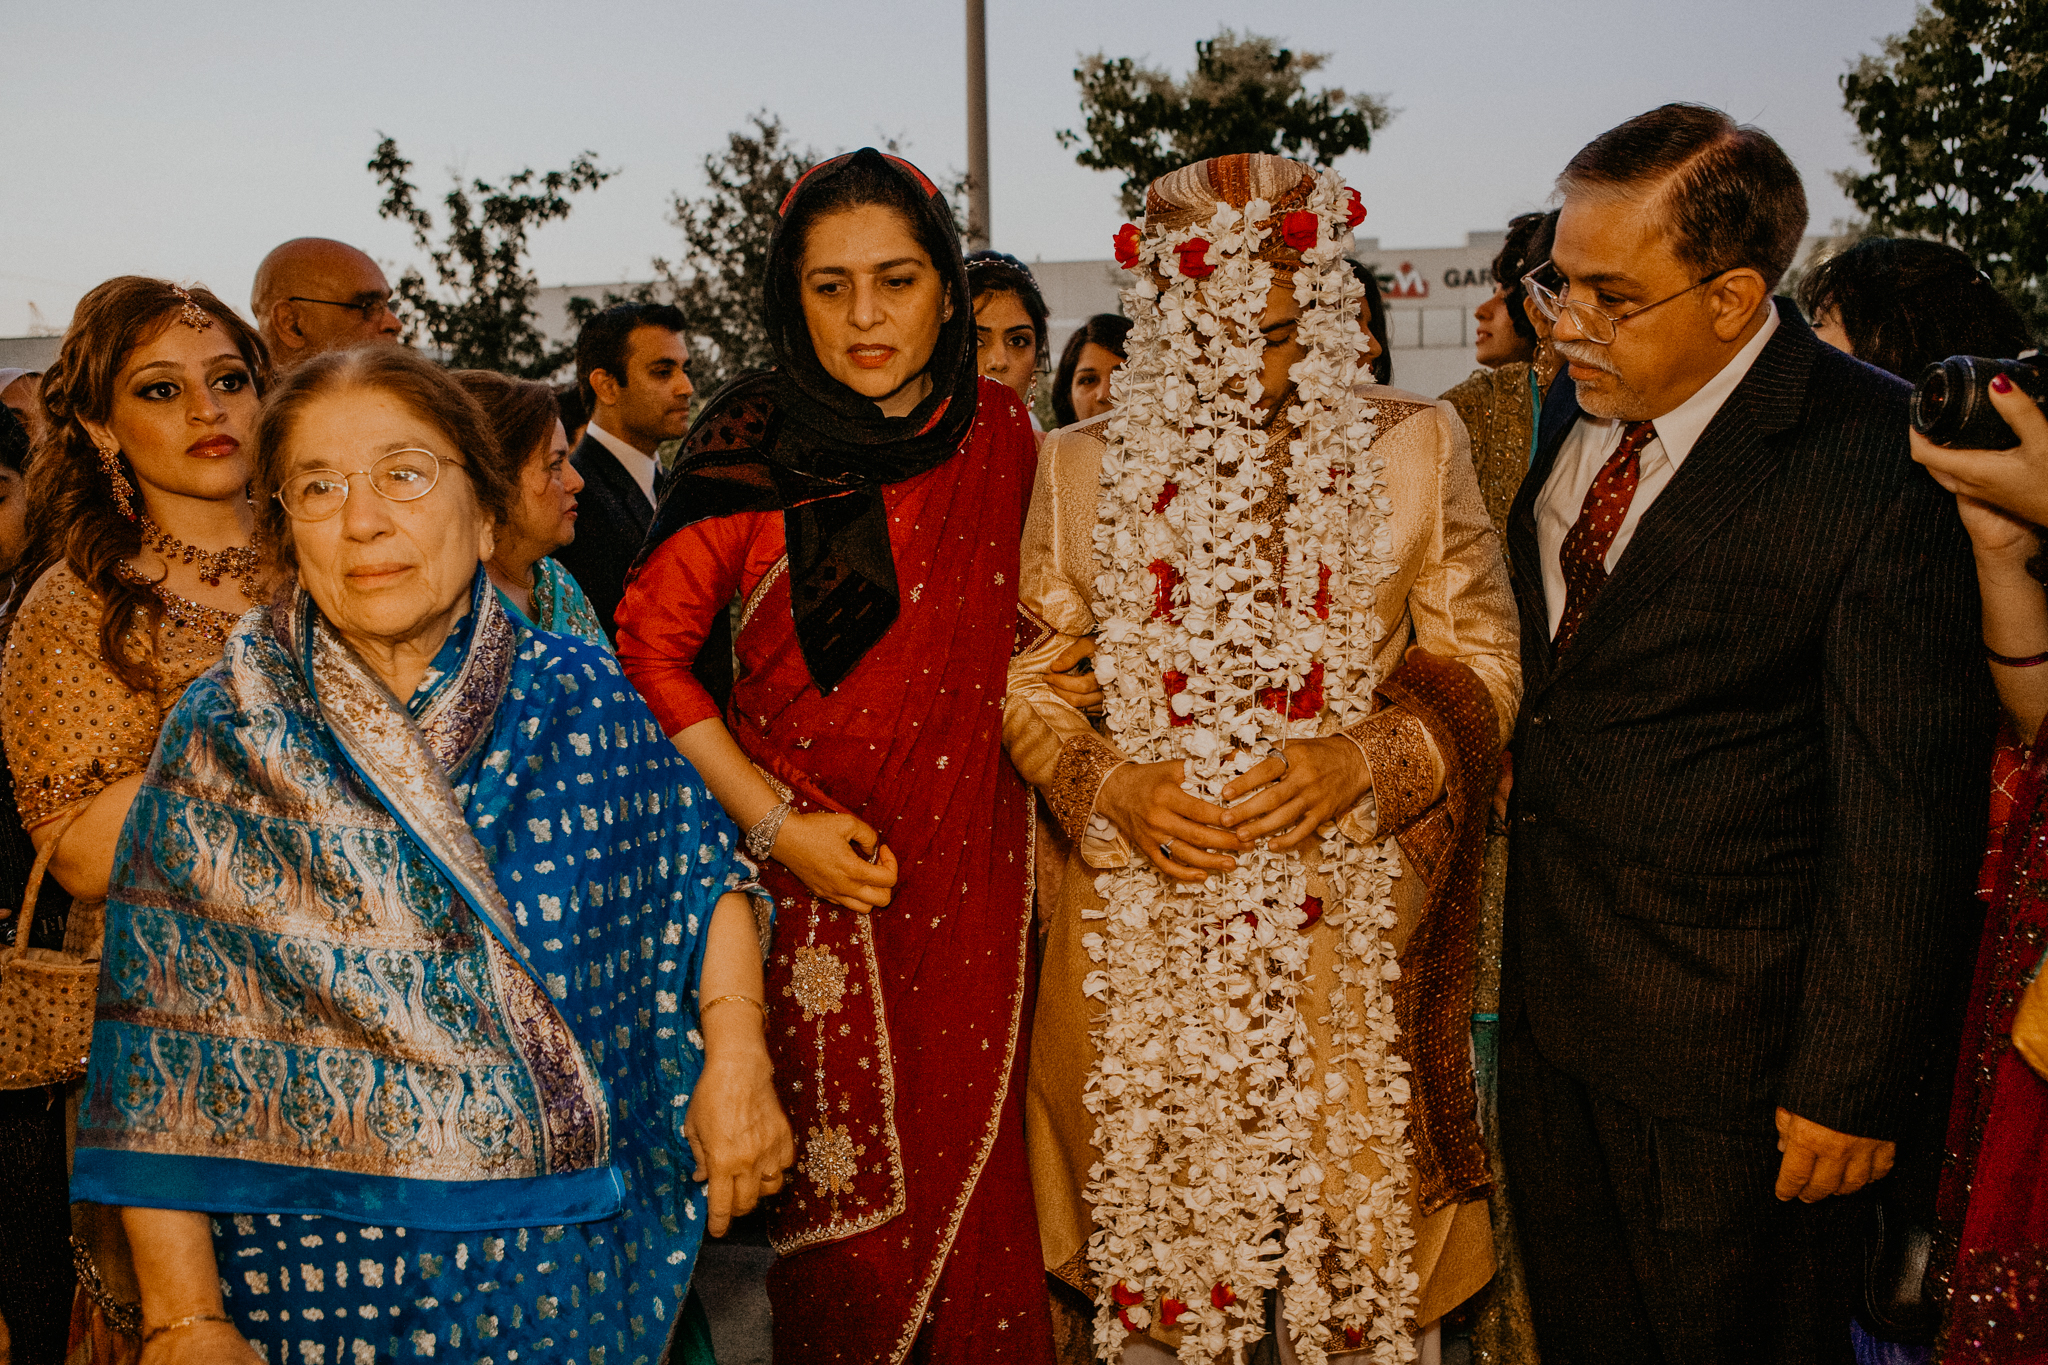 Indian groom in flower veil being led to ceremony by family